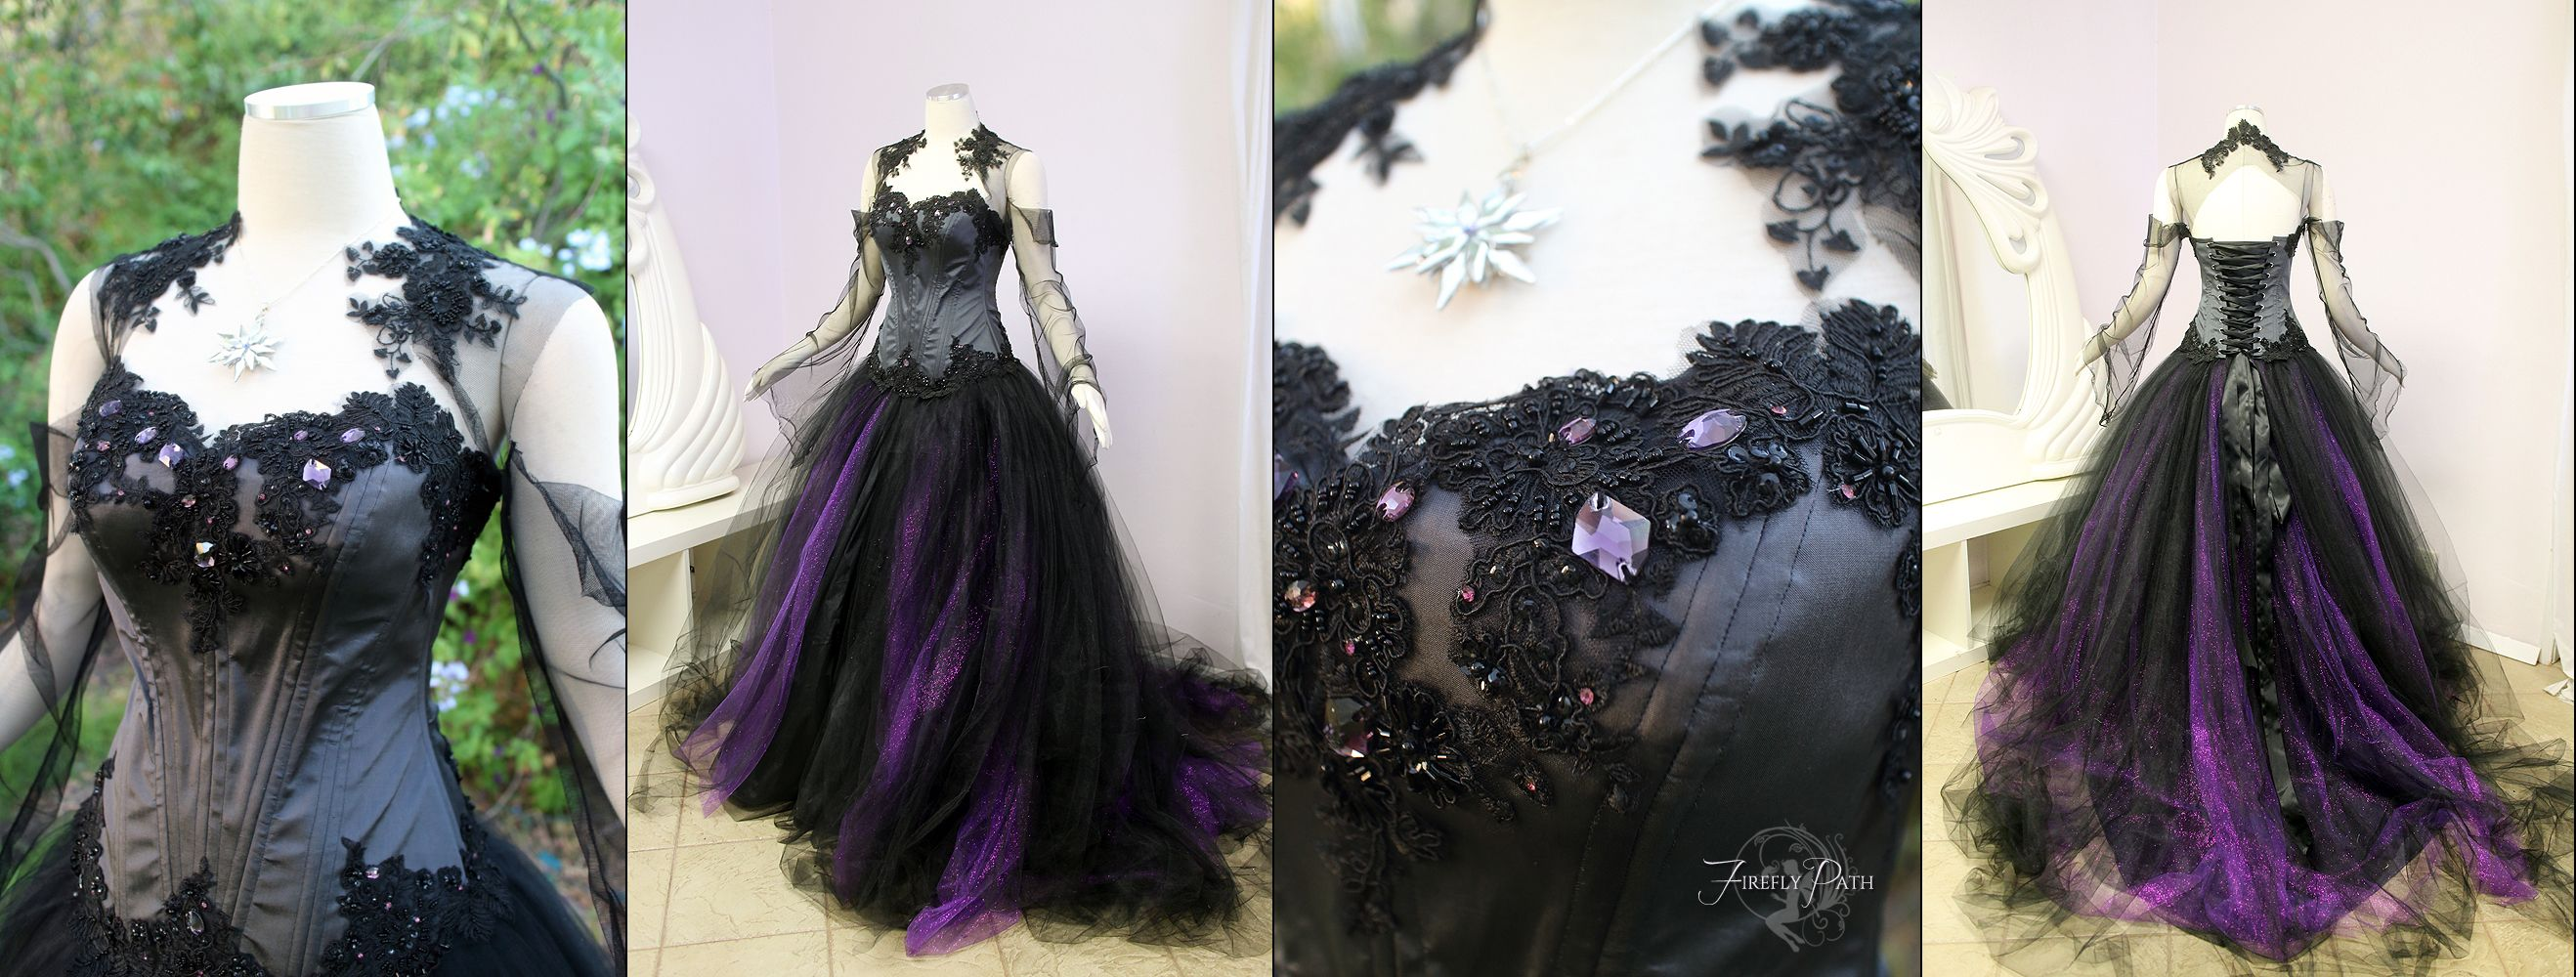 wedding dress halloween costume Halloween Wedding Dress by Lillyxandra female black grey purple gown necklace jewelry corset dark elf drow